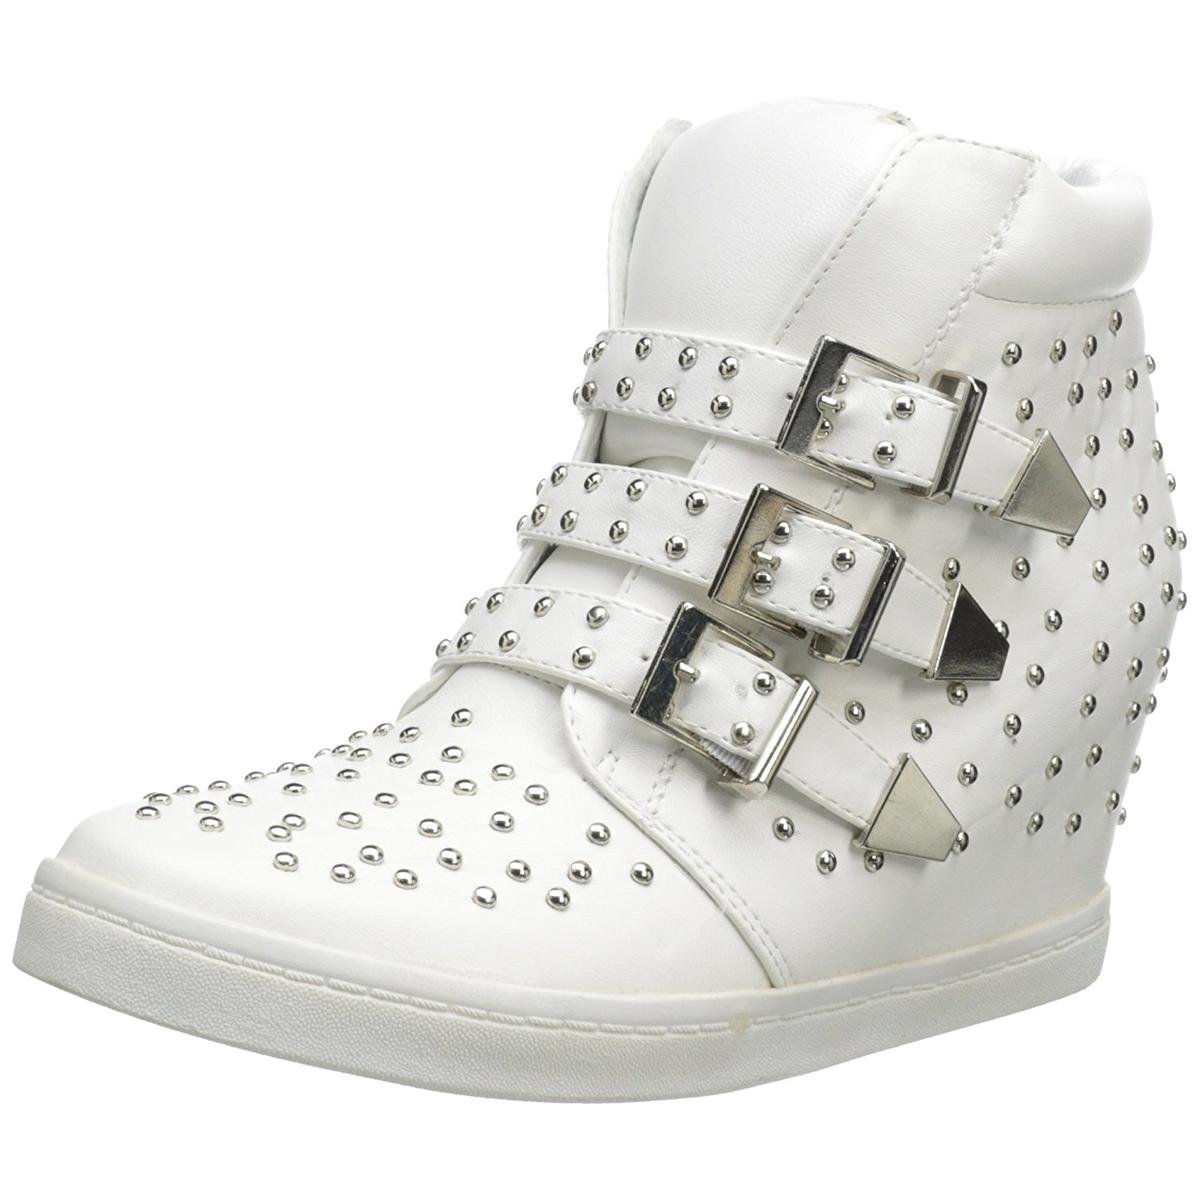 N.Y.L.A Women's Buckley White Wedge Fashion Sneakers